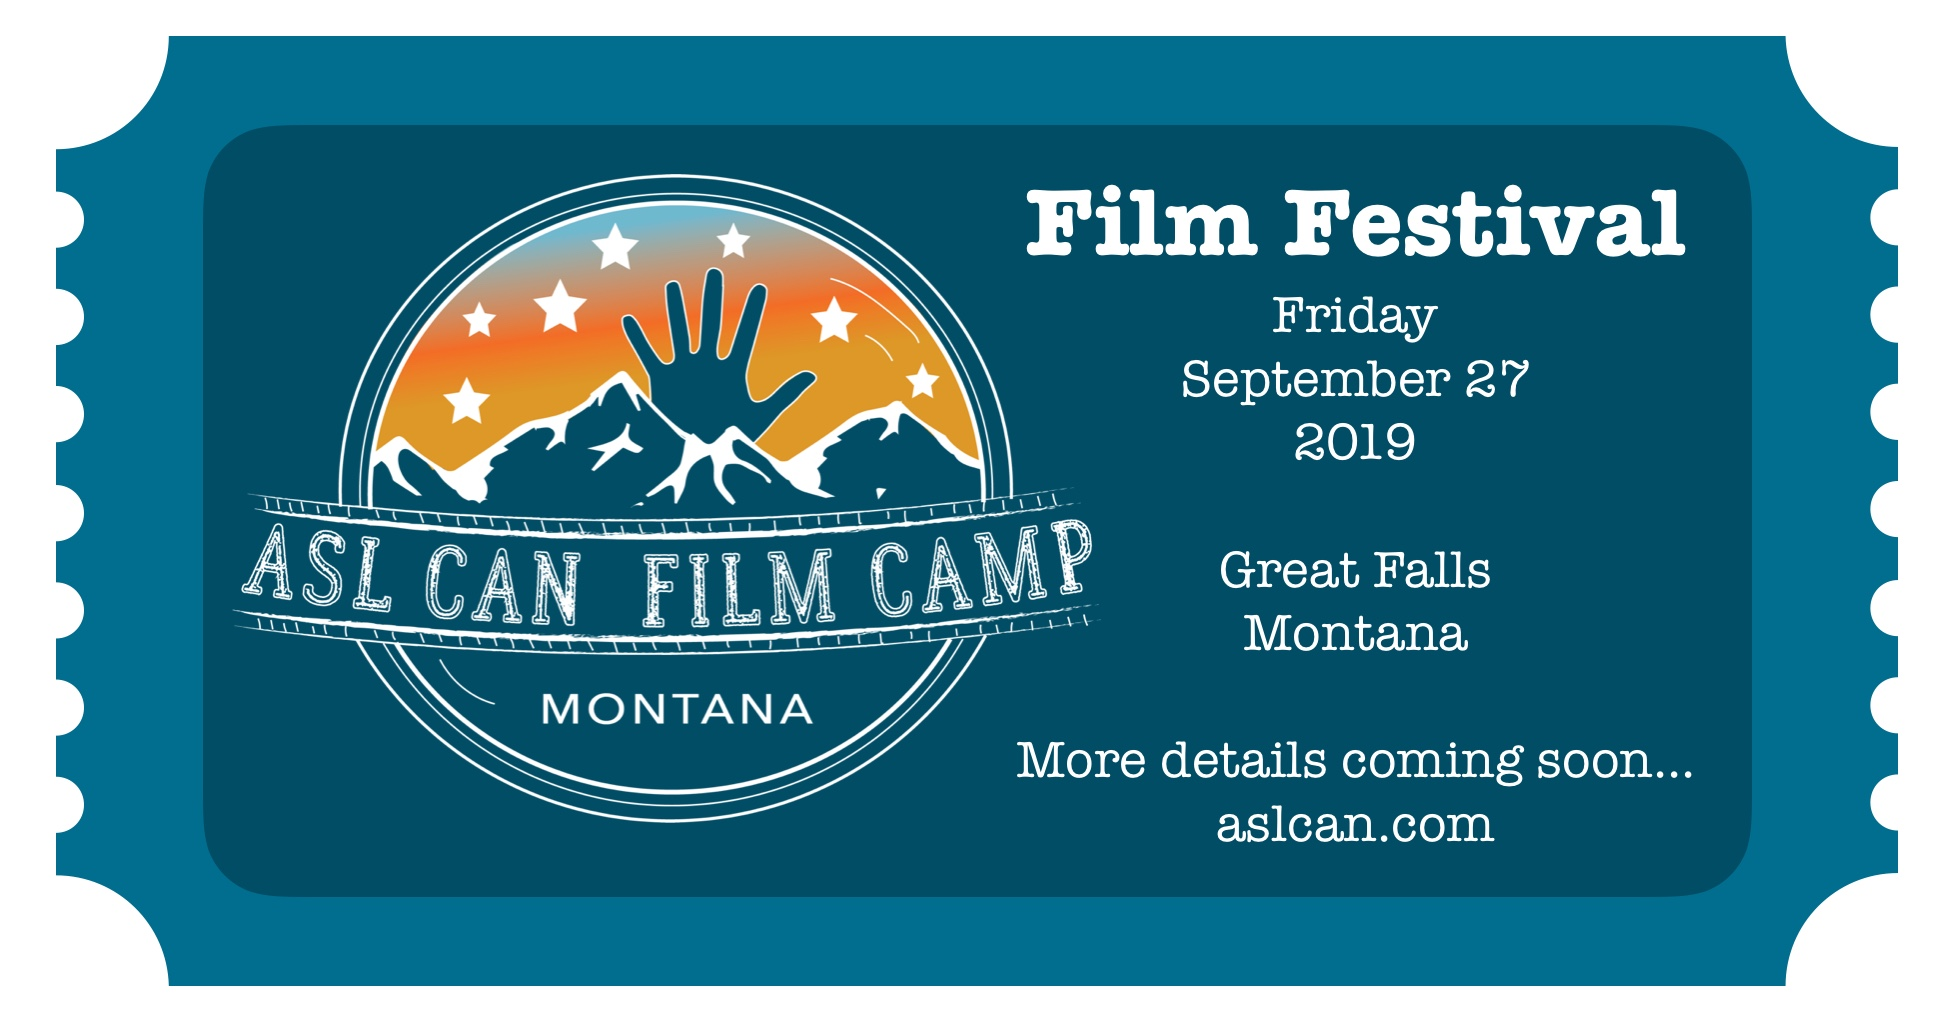 Film Festival! @ To be announced...